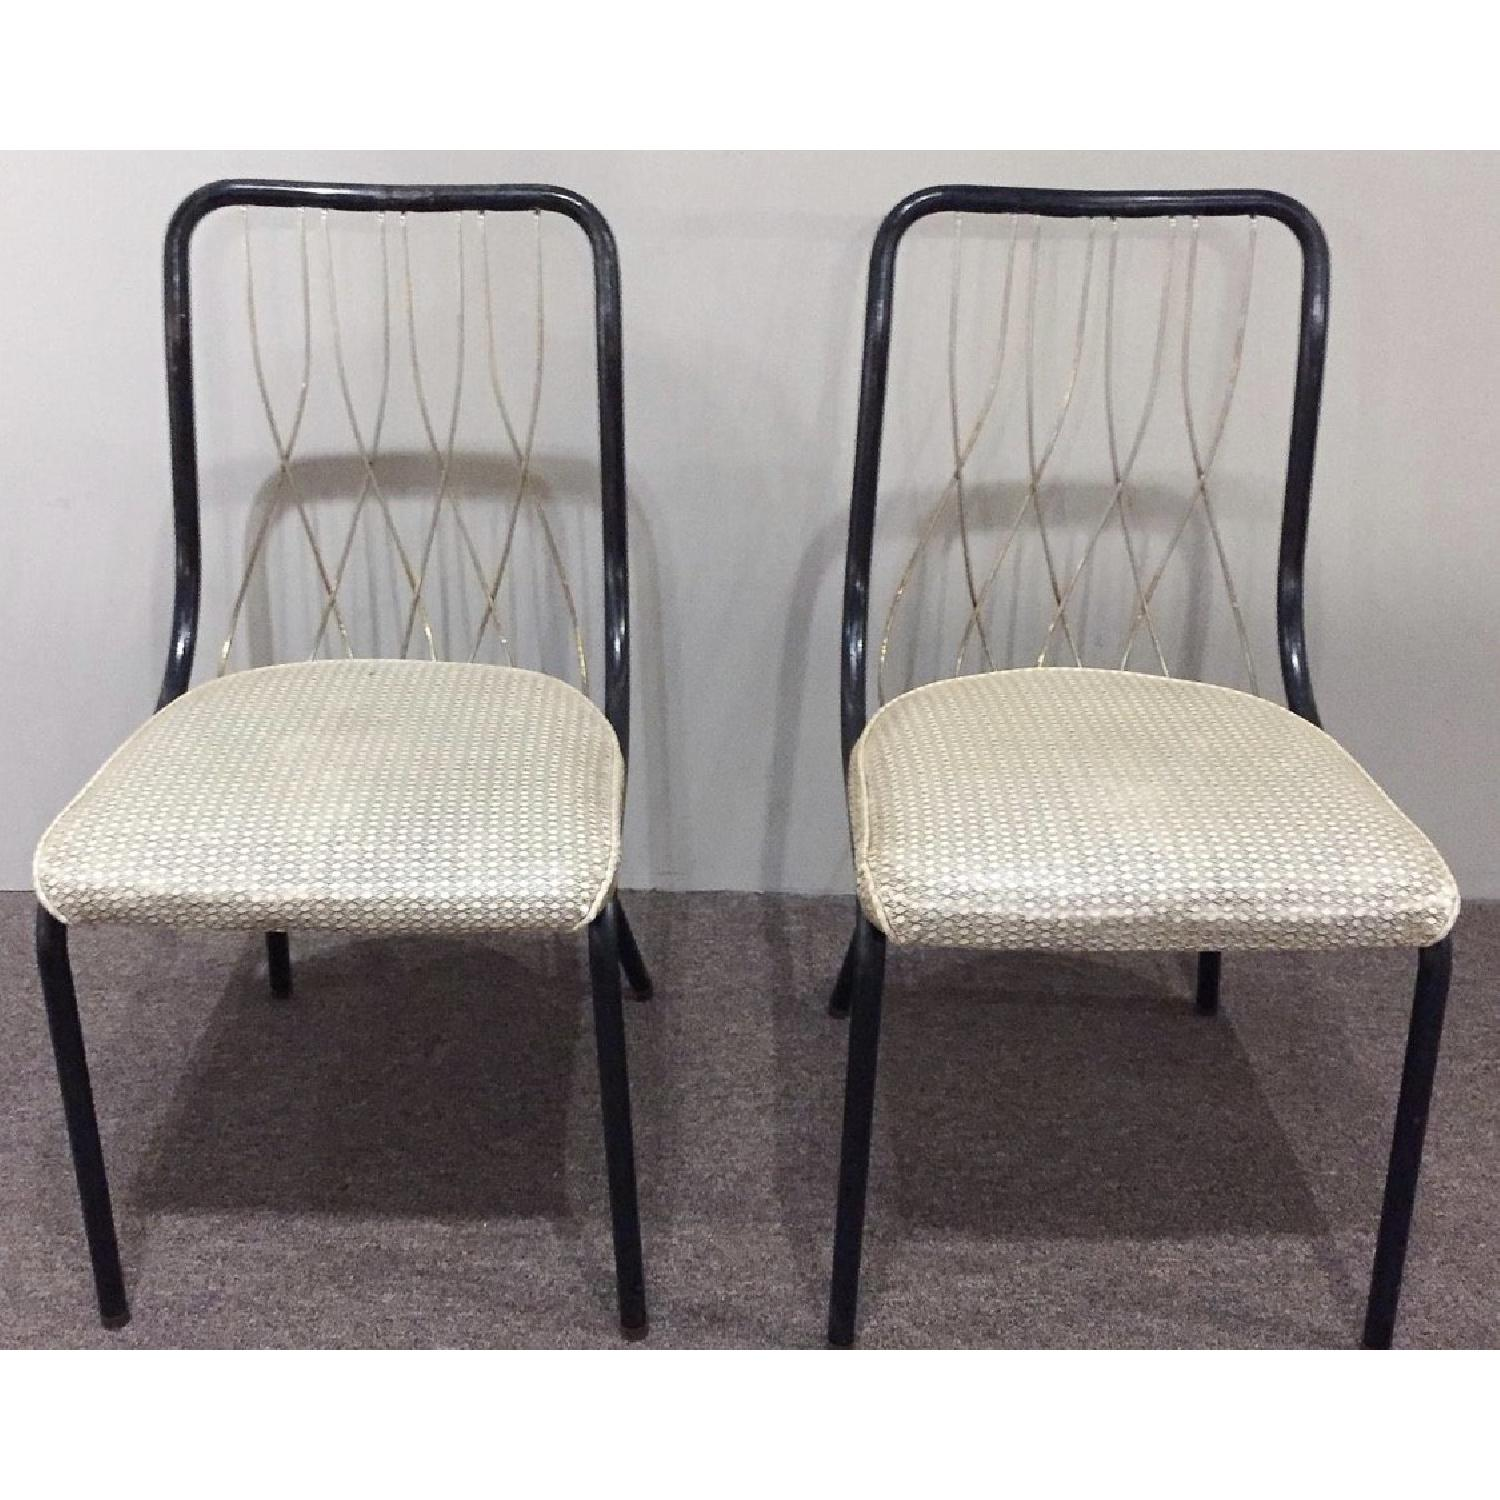 Vintage French Art Deco Brass & Leather Chairs - image-1